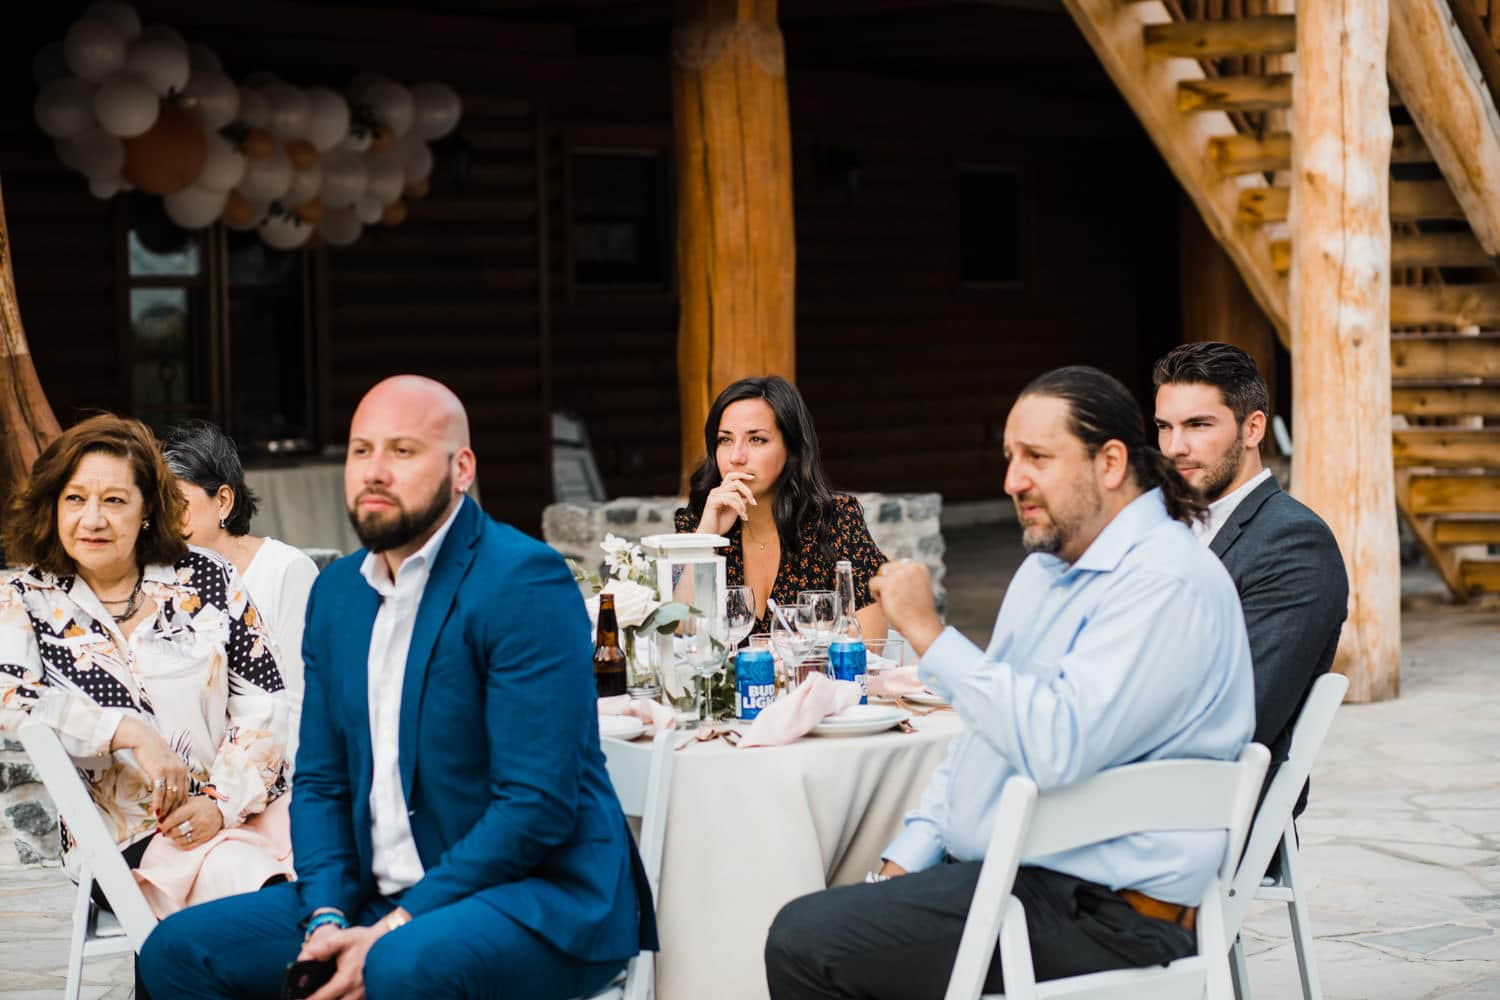 guests watch closely during outdoor wedding